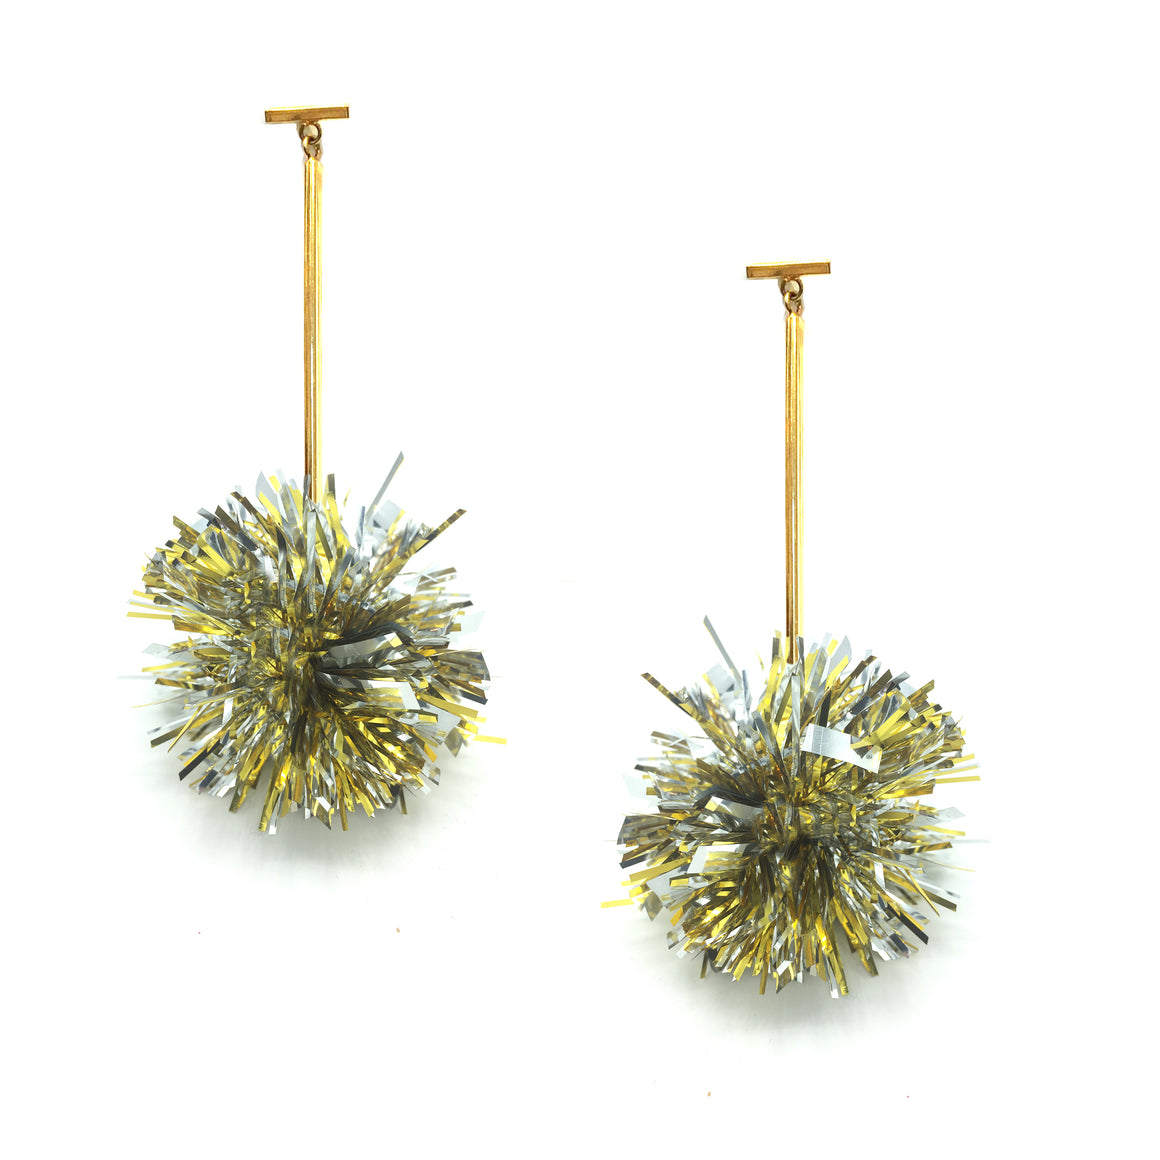 "Gold and Silver 2"" Lurex Pom Pom T Bar Earrings, Earrings, Tuleste, Tuleste"